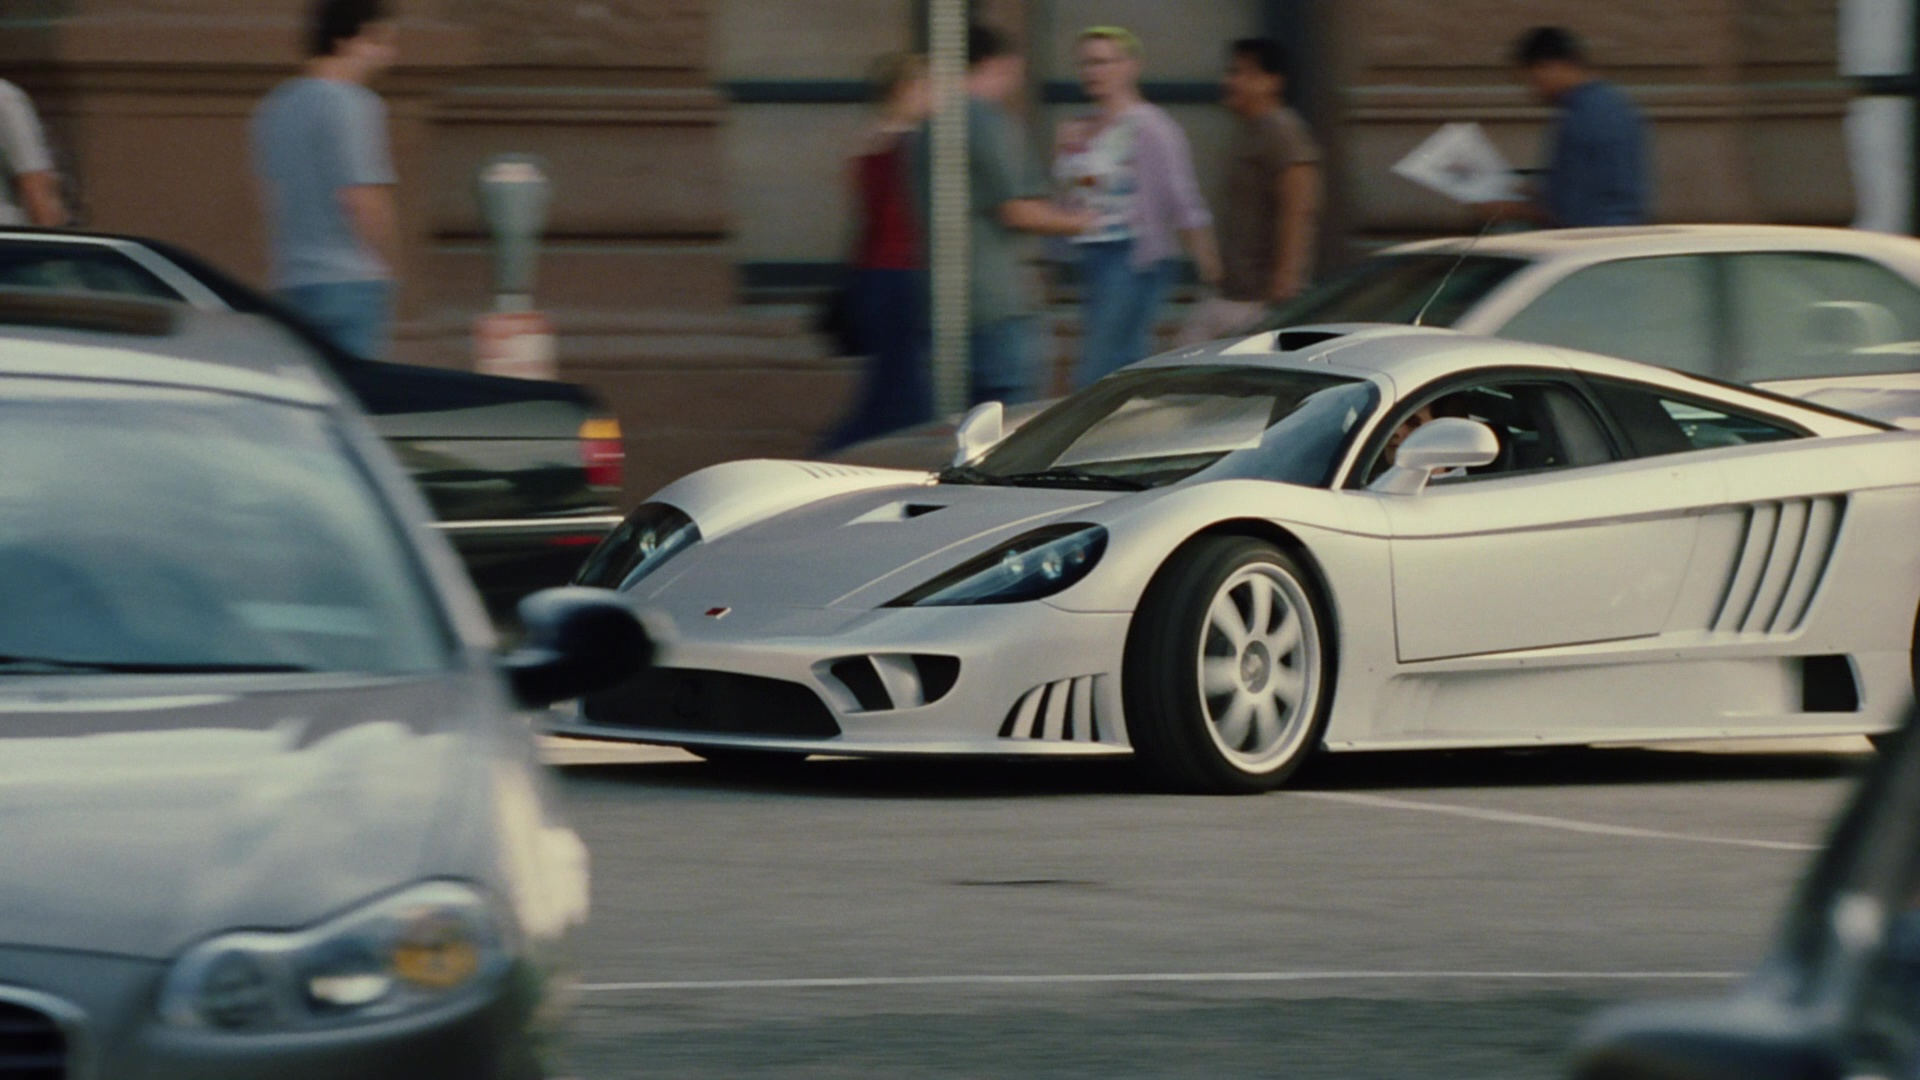 Seen In The Movie Saleen S7 American Hand Built High